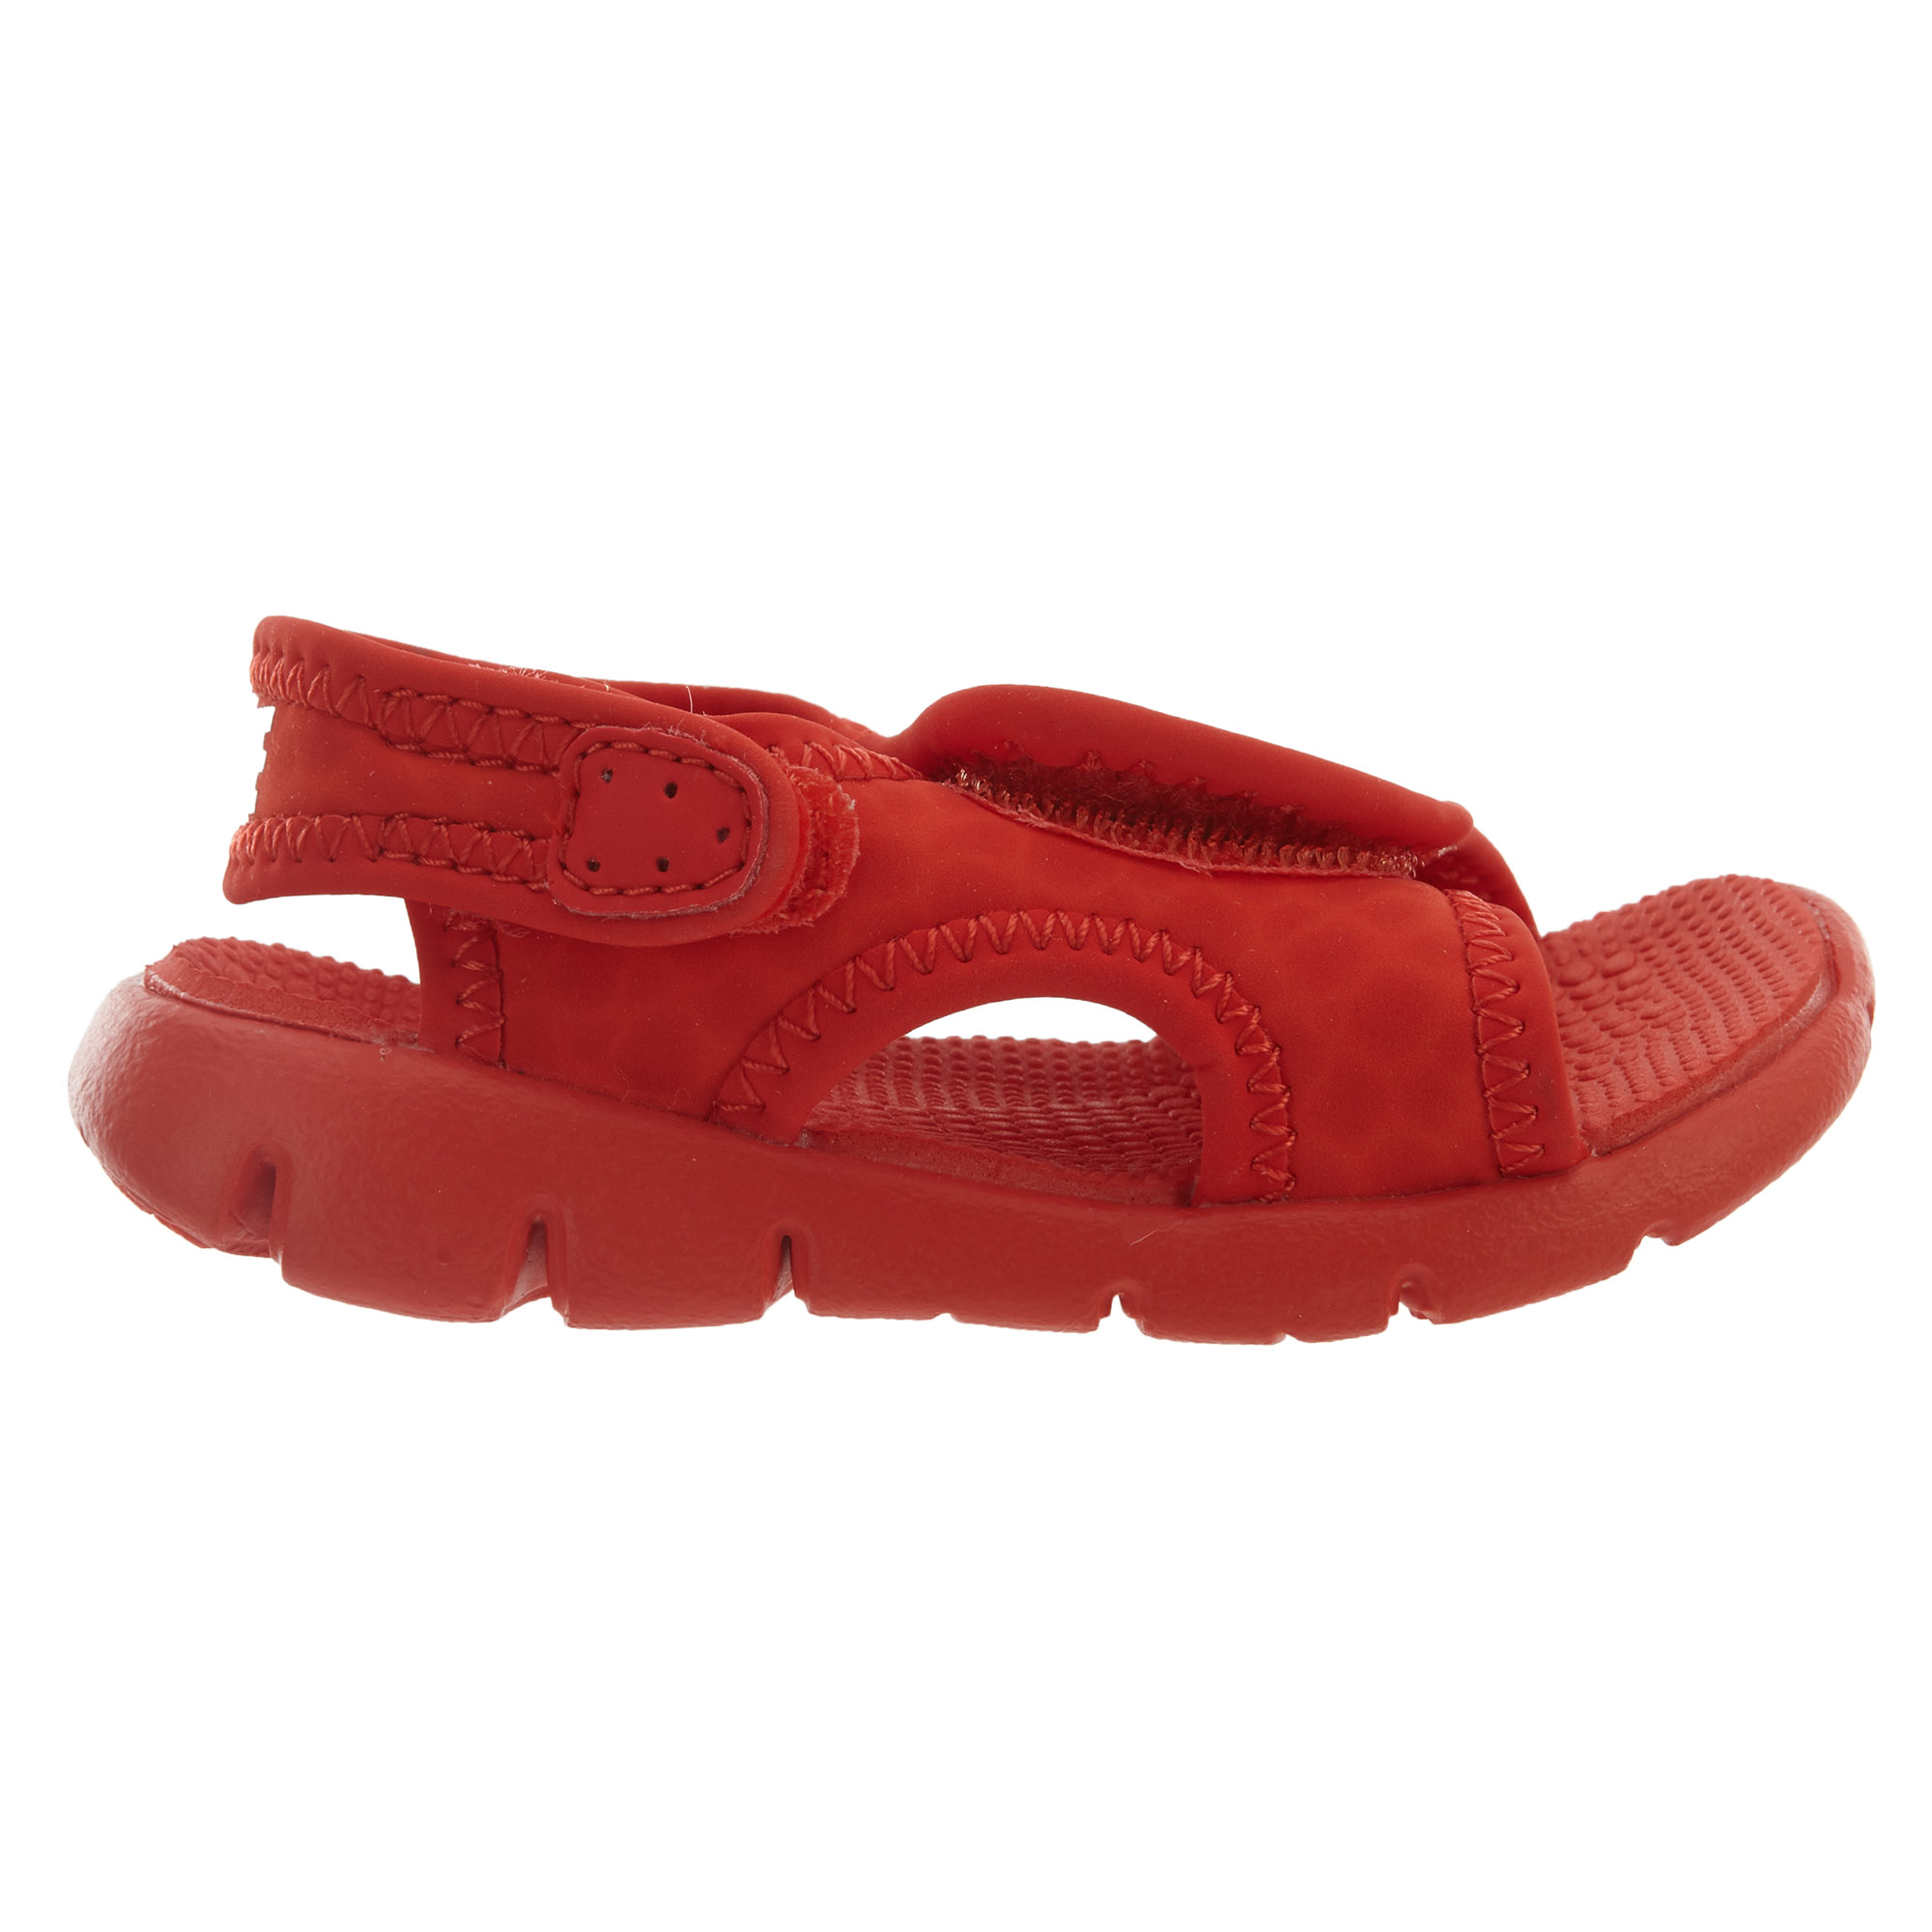 bf5c603c3913 Nike Toddlers Sunray Adjust 4 Sandals 386519-603